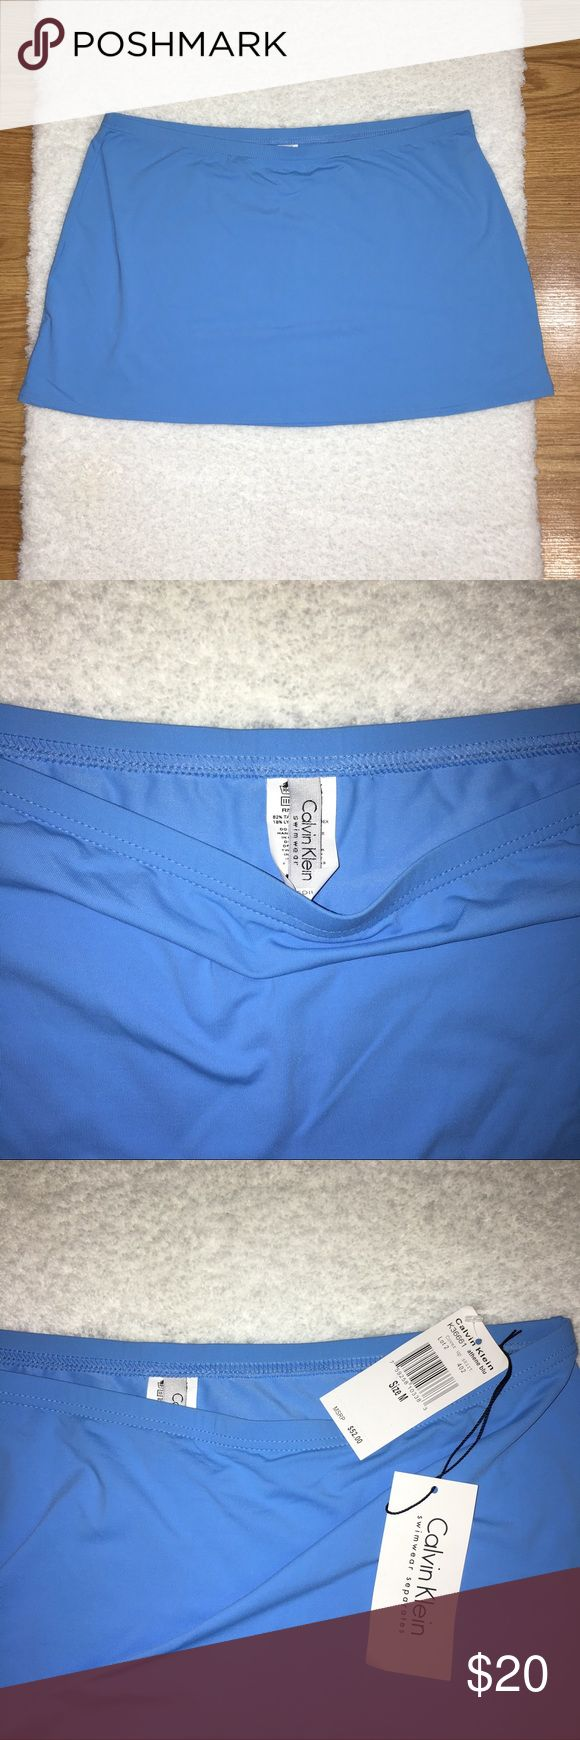 Calvin Klein Cover up Skirt Size Medium, waist: 30' length: 12.5' has a small mark on the inside of Skirt shown in picture, 82% tactless nylon 18% Lycra spandex NWT in good condition never worn Calvin Klein Swim Coverups